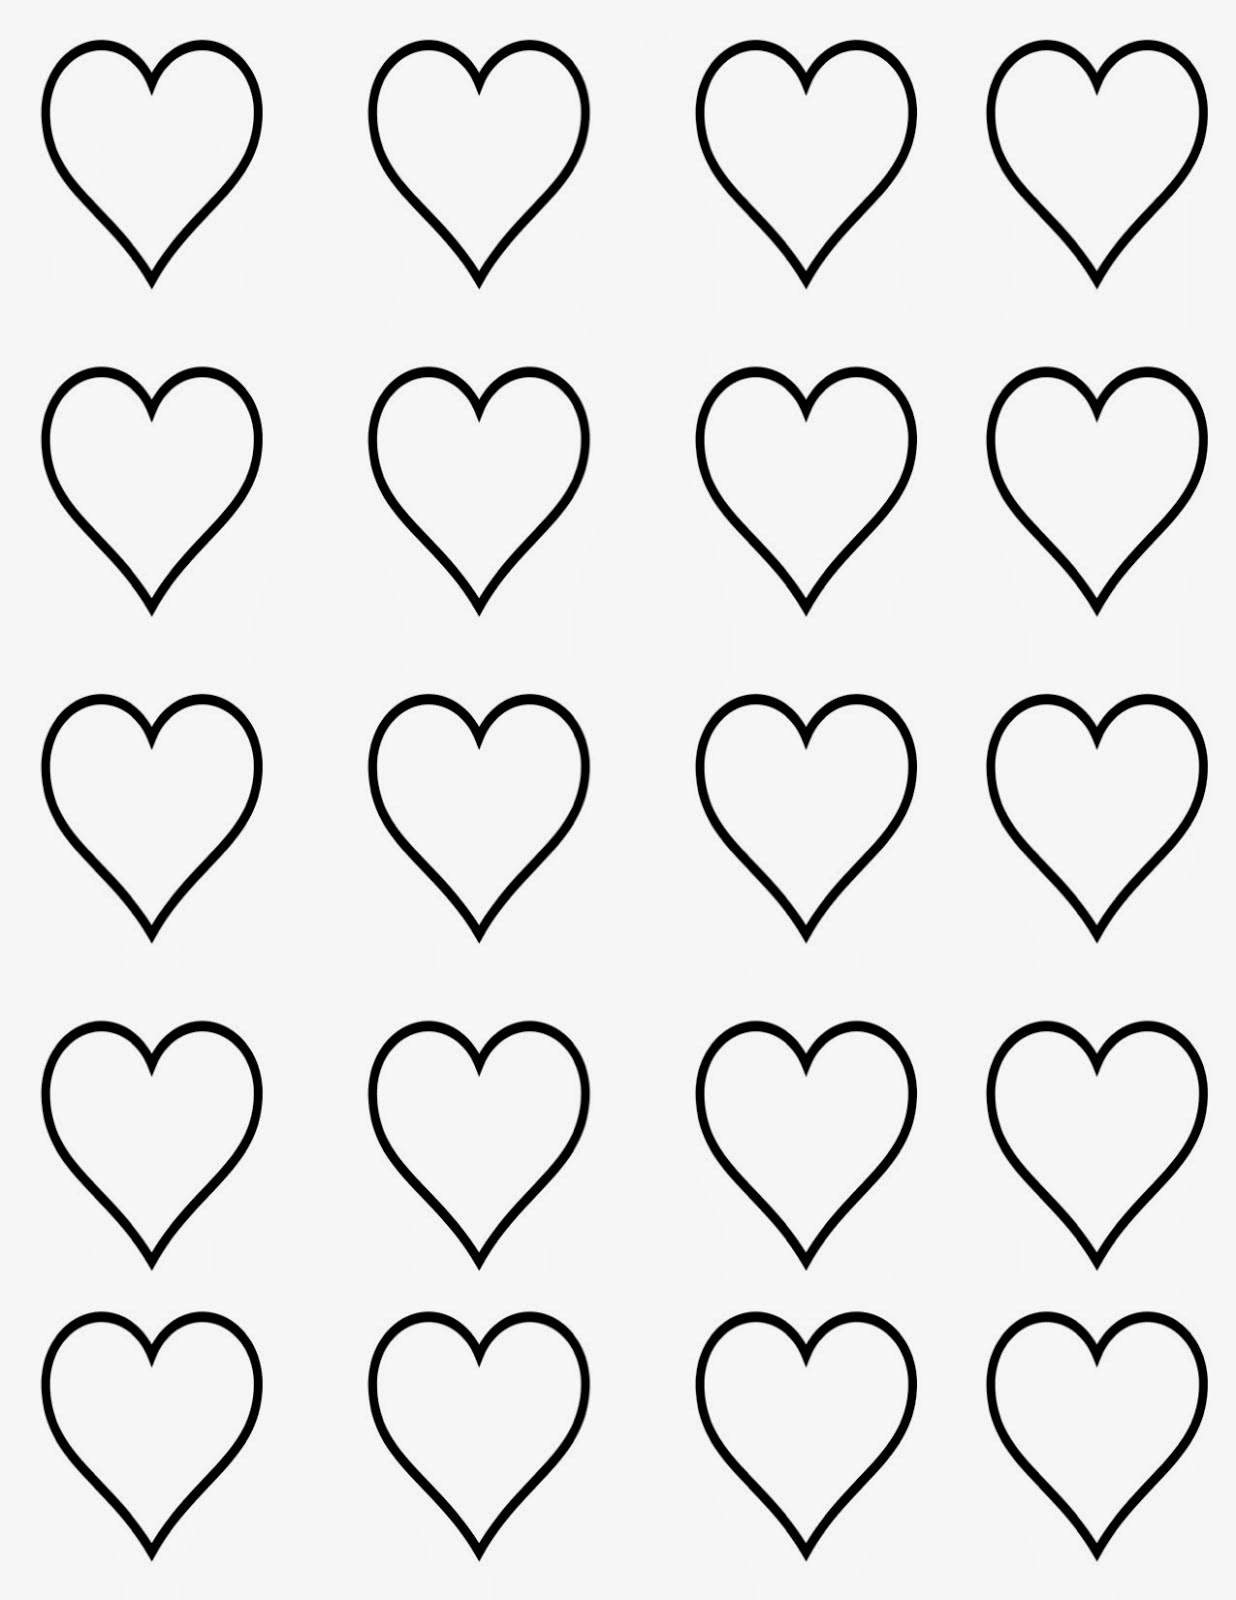 Heart Templates Is It For PARTIES FREE